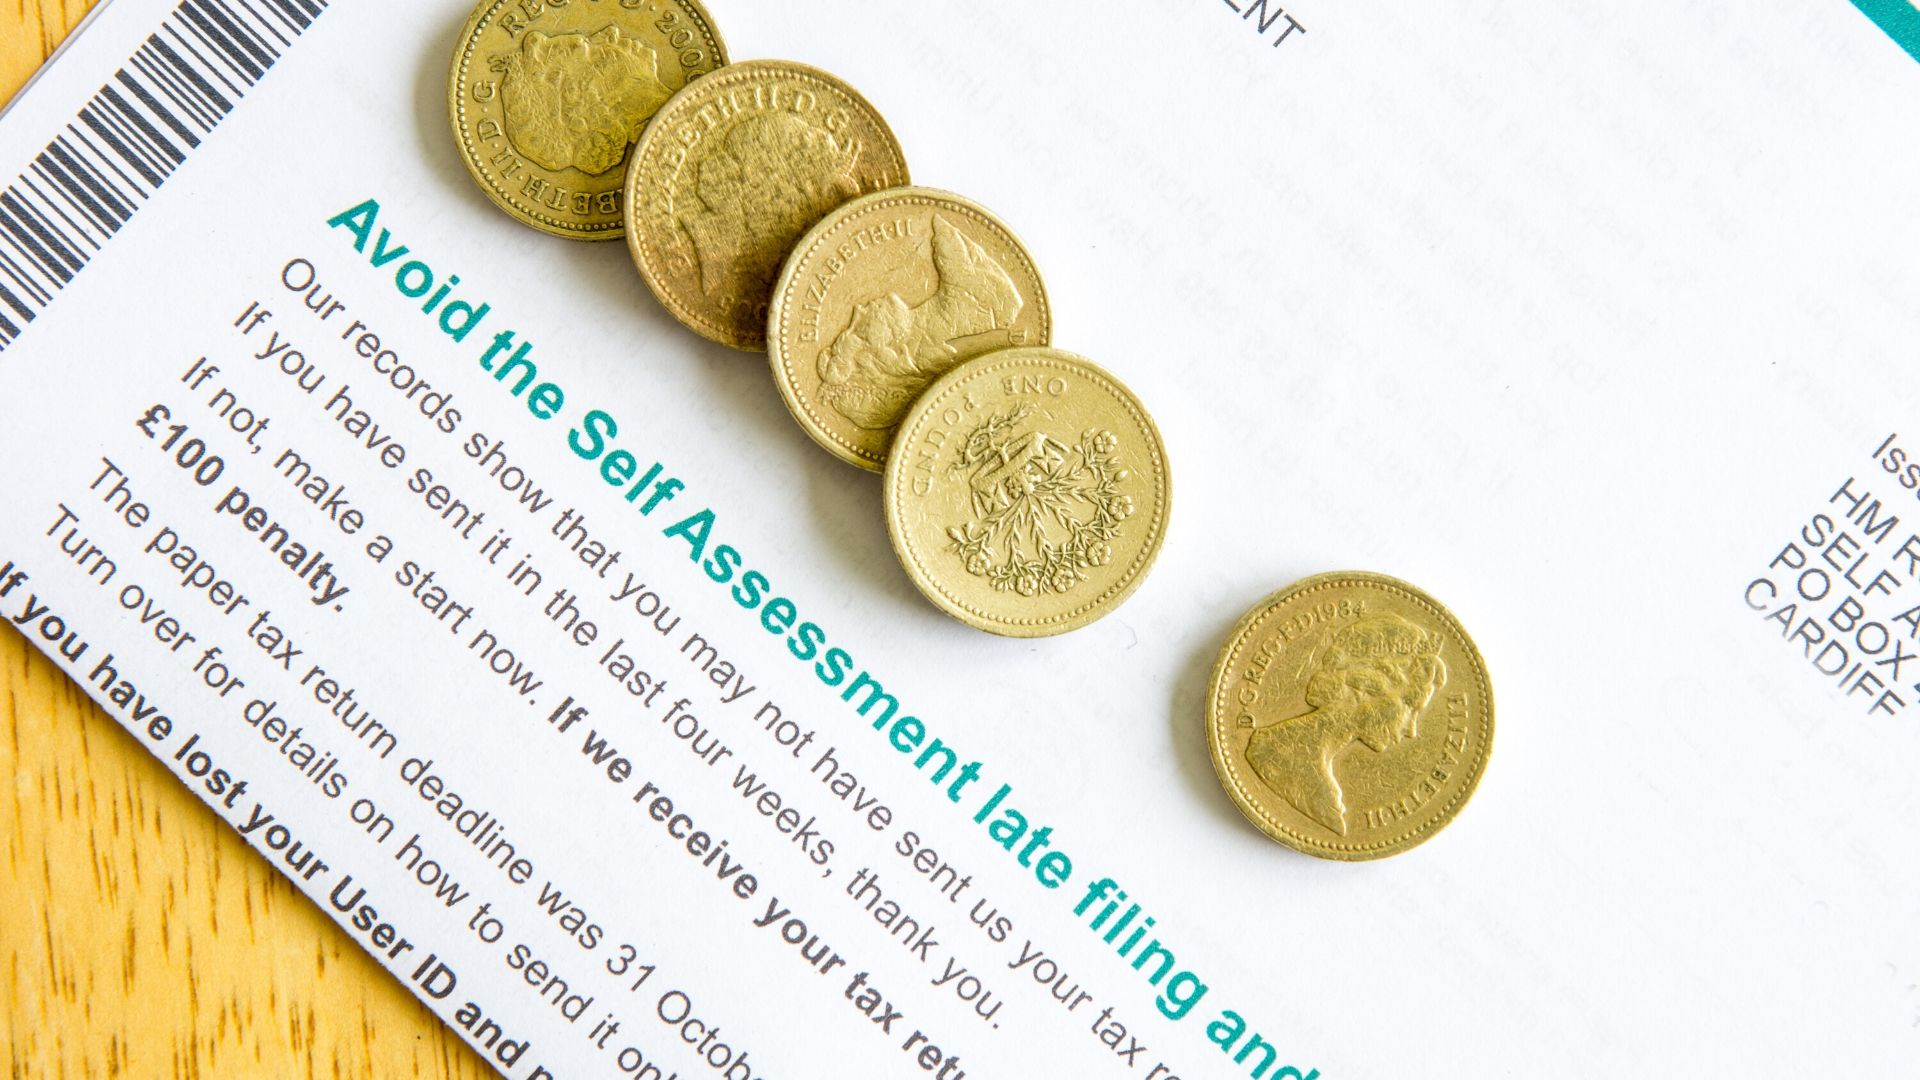 image of some pound coins on tops of a tax return form